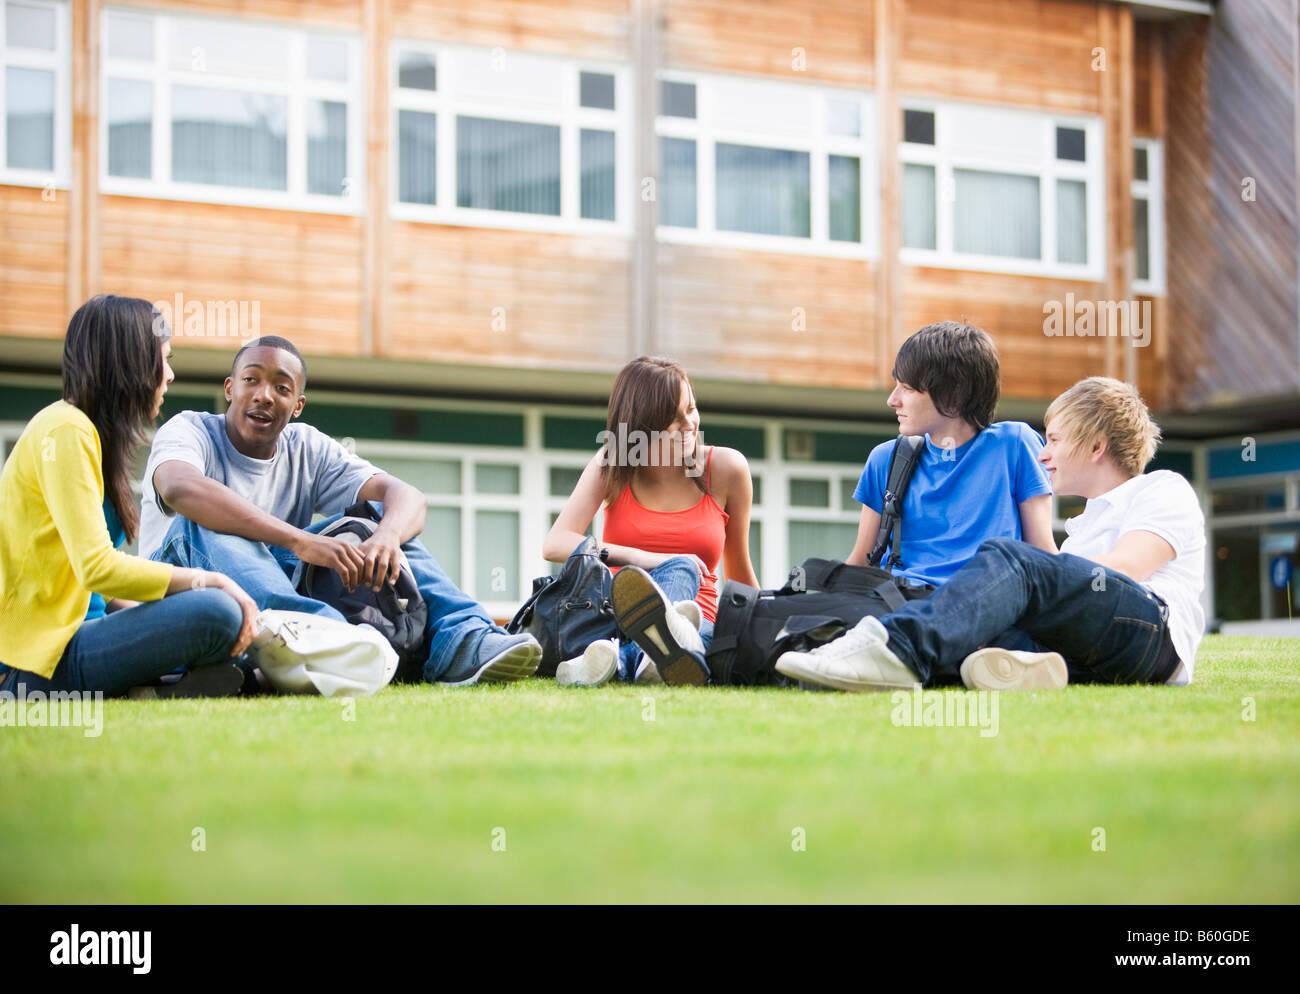 Five students sitting outdoors on lawn talking - Stock Image